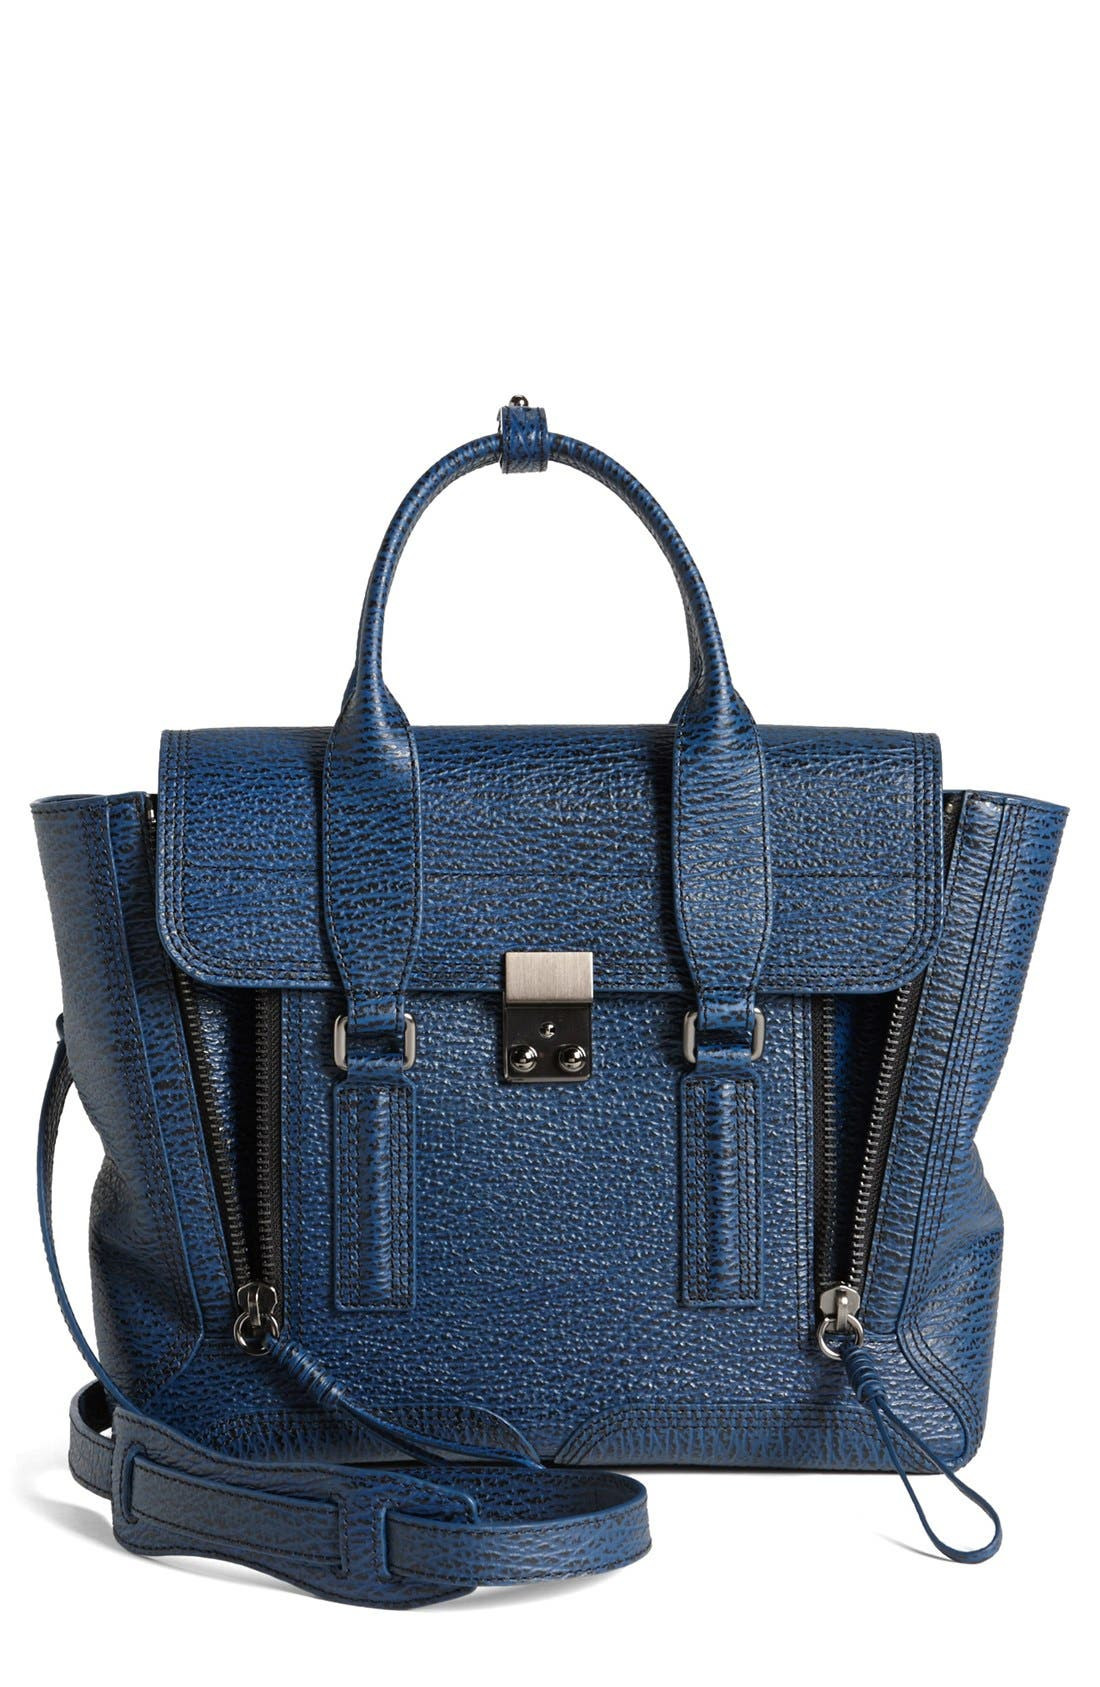 Alternate Image 1 Selected - 3.1 Phillip Lim 'Medium Pashli' Shark Embossed Leather Satchel